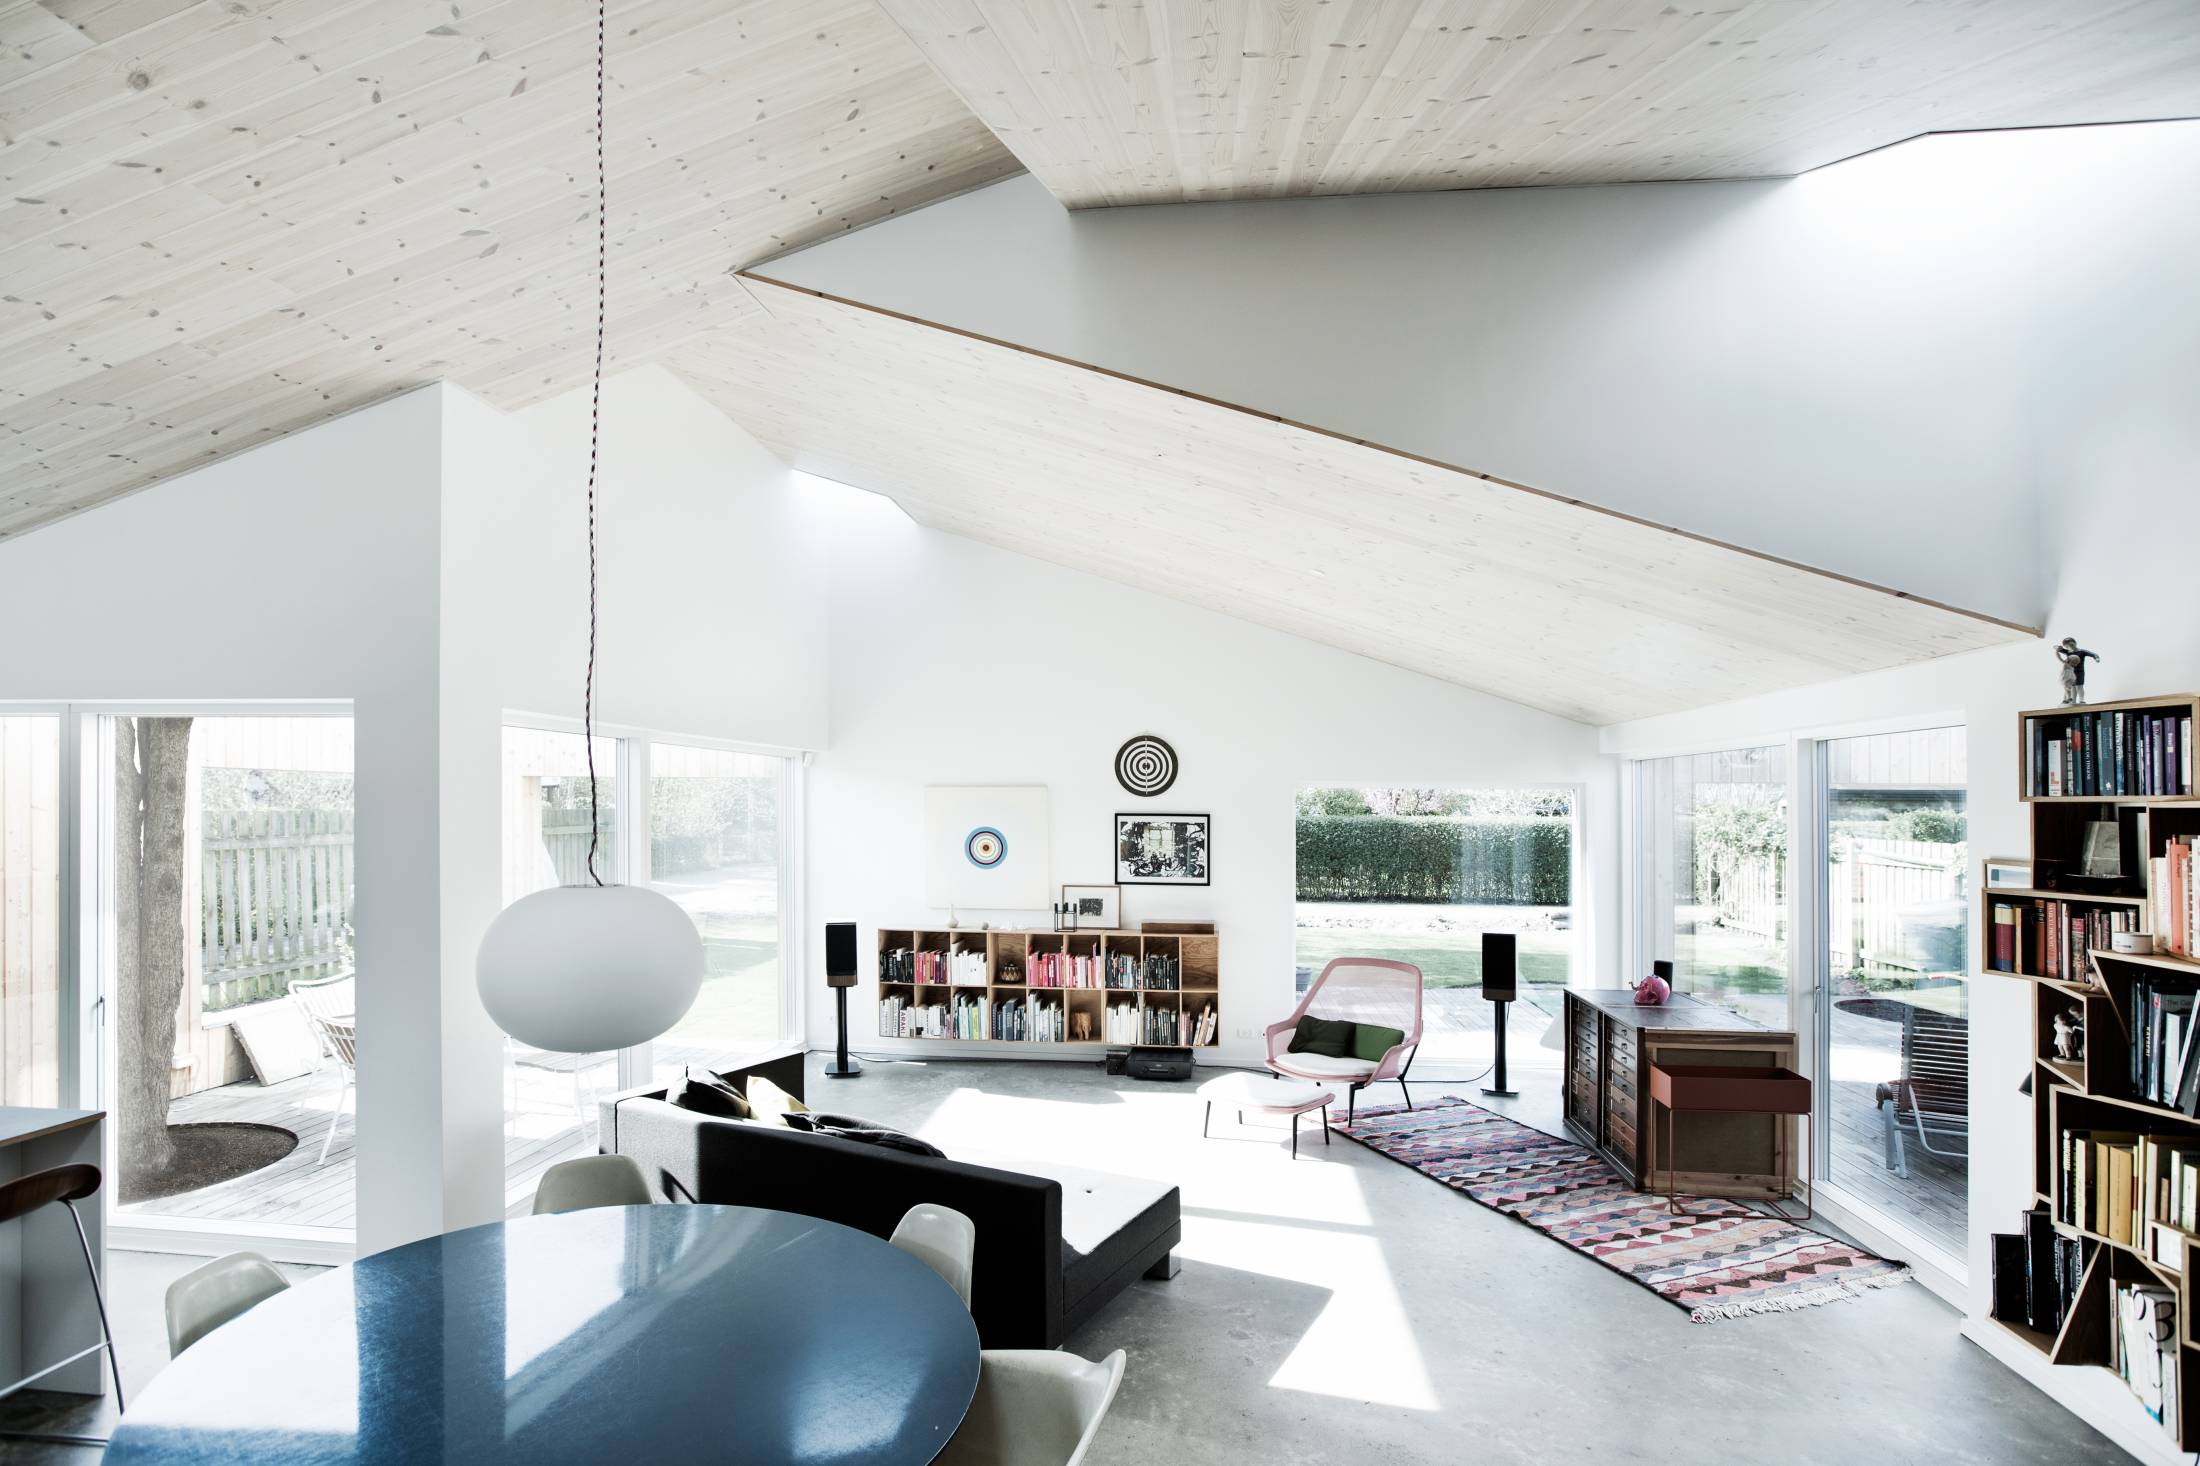 The Perfect House: 4 Award-winning Houses in Denmark, Austria, the ...